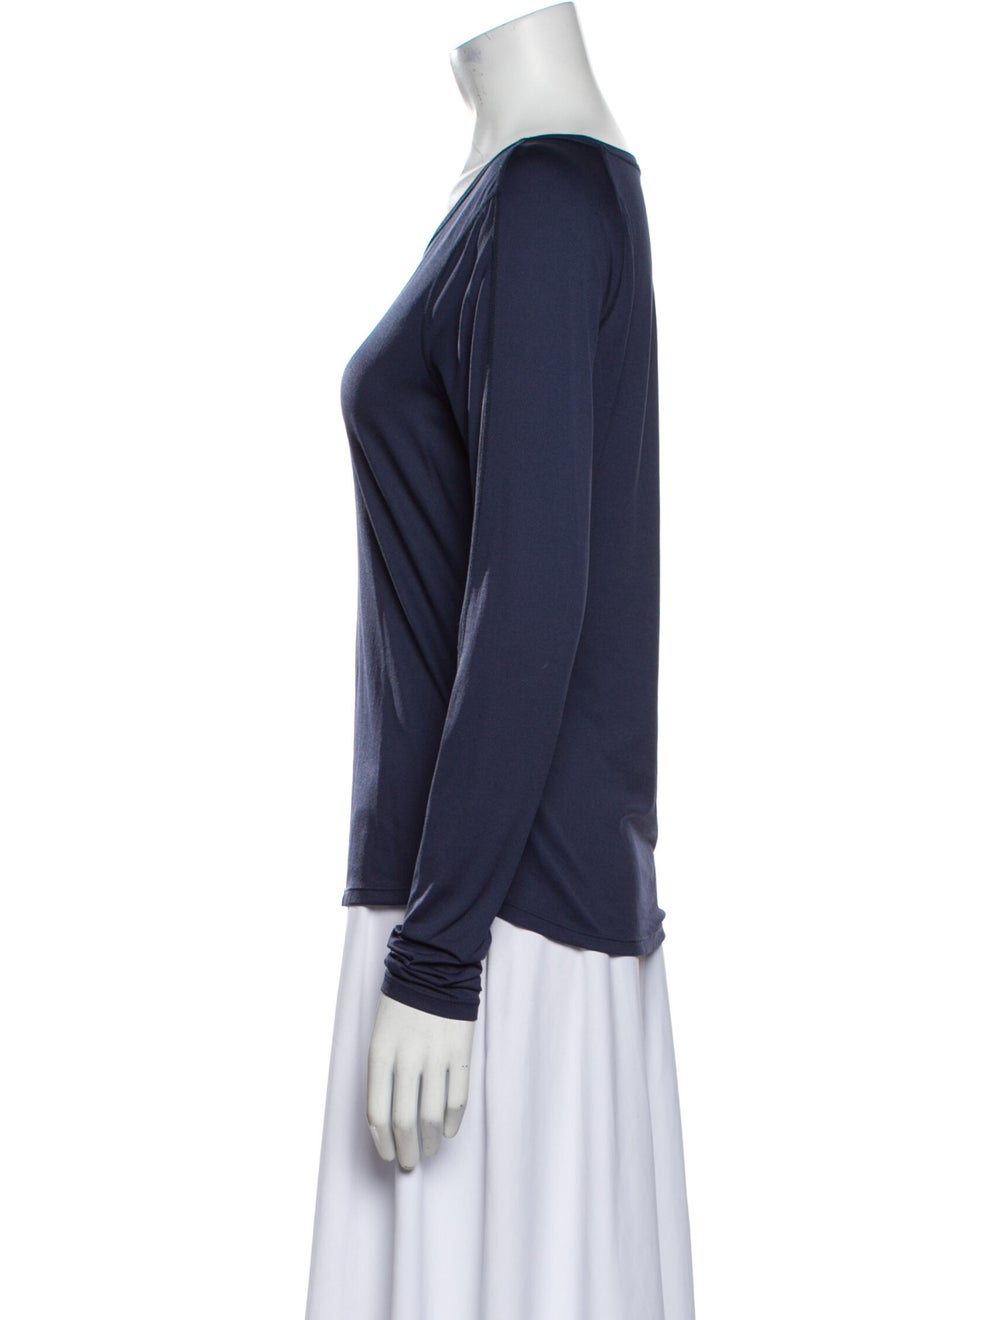 Outdoor Voices Scoop Neck Long Sleeve T-Shirt Blue - image 2